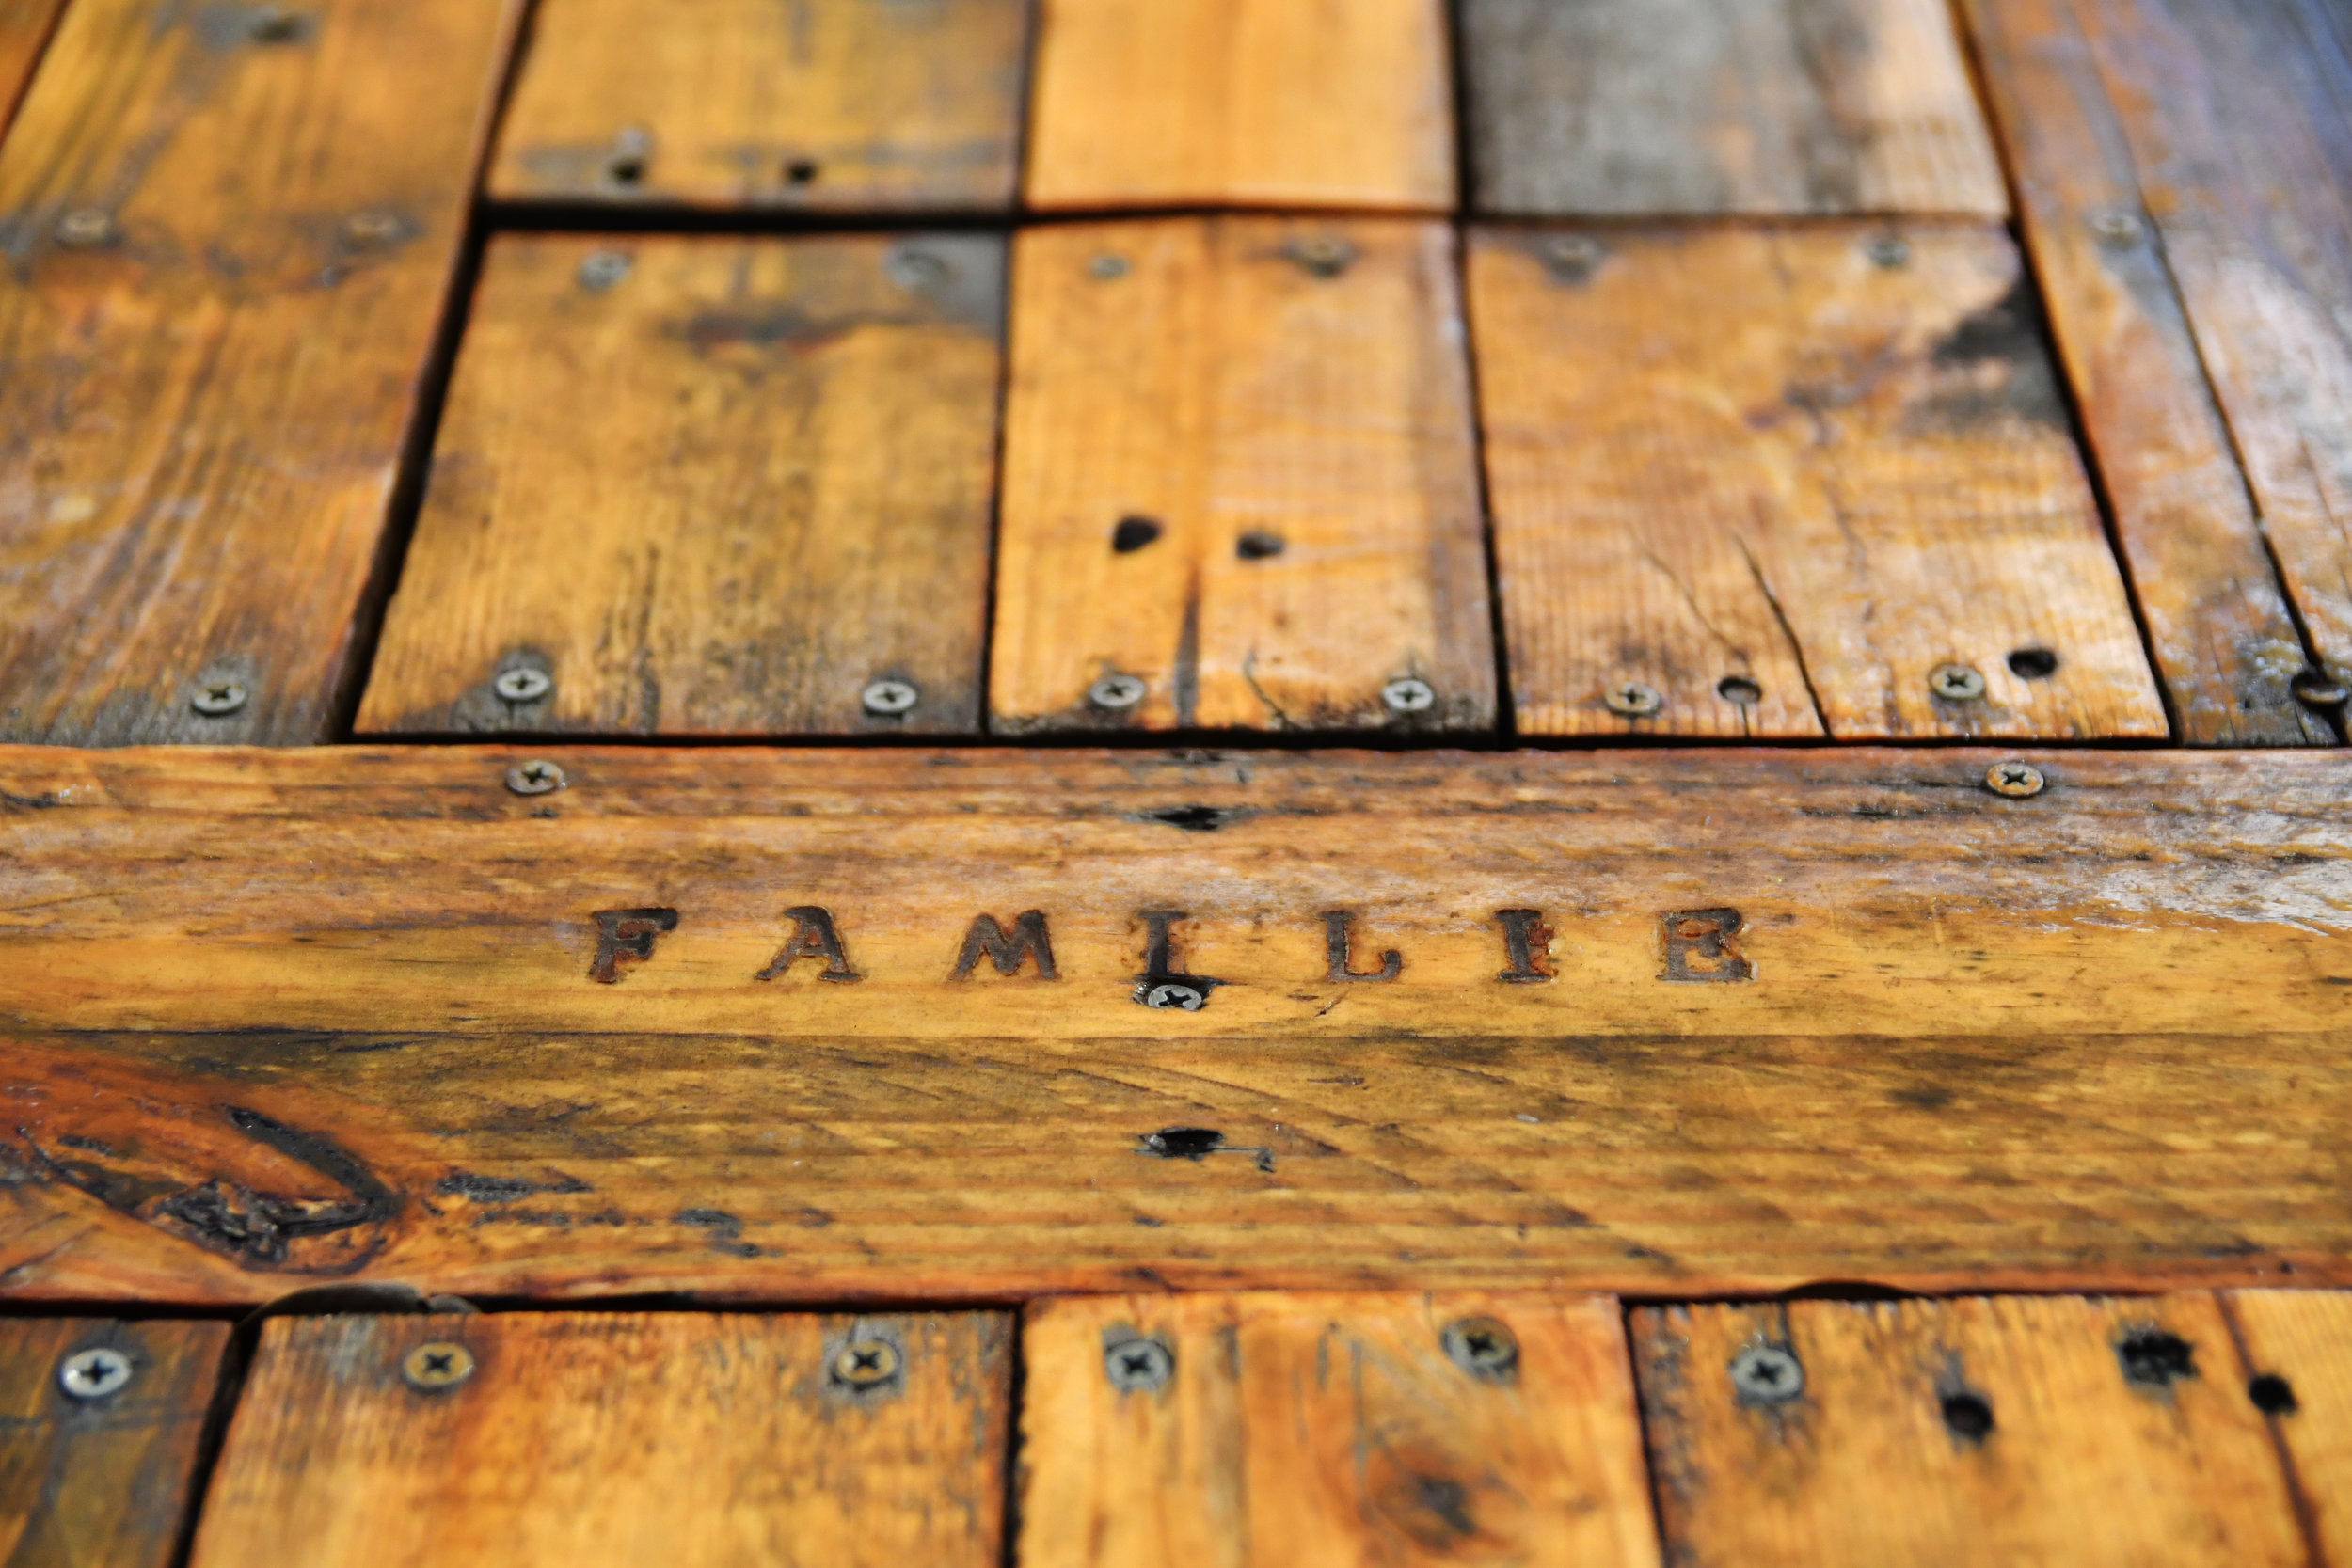 """The world """"familie,"""" which is Dutch for """"family,"""" it etched into an outside table. Vandegrift said he built the table during his time off to pass time."""